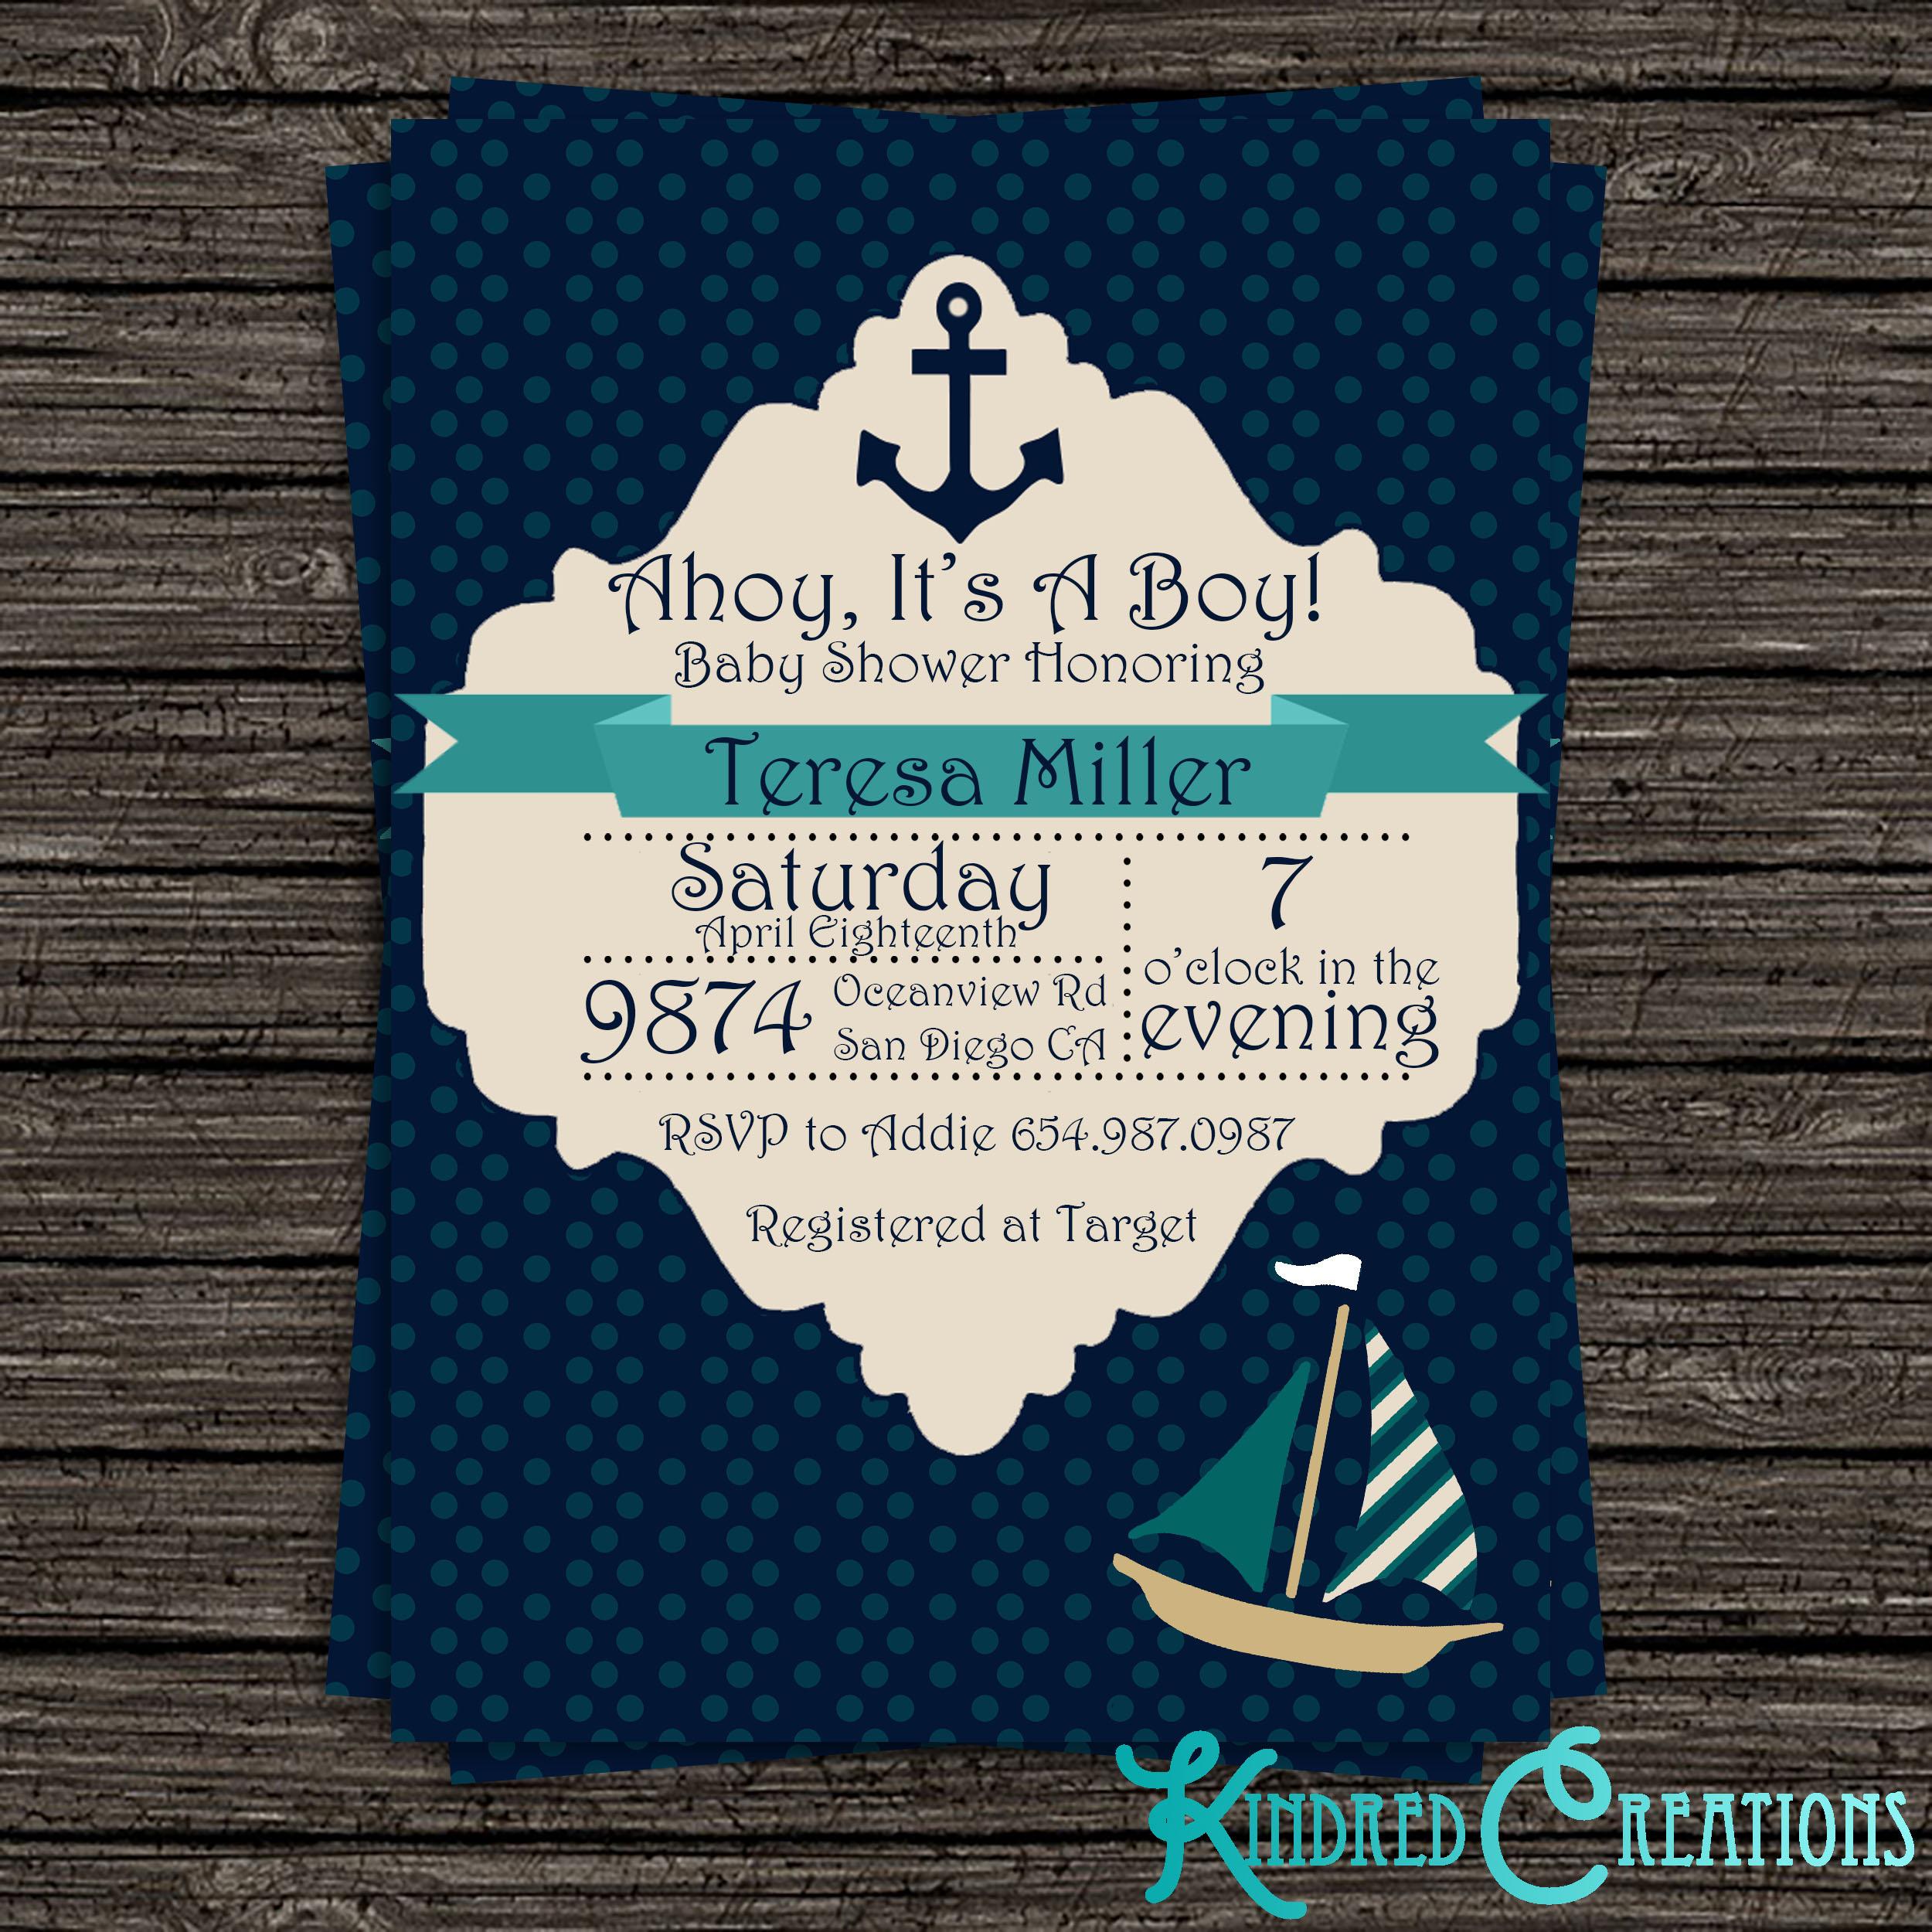 Full Size of Baby Shower:baby Shower Invitations Elegant Baby Shower Oriental Trading Baby Shower Baby Shower Favors Ideas For Baby Shower Centerpieces